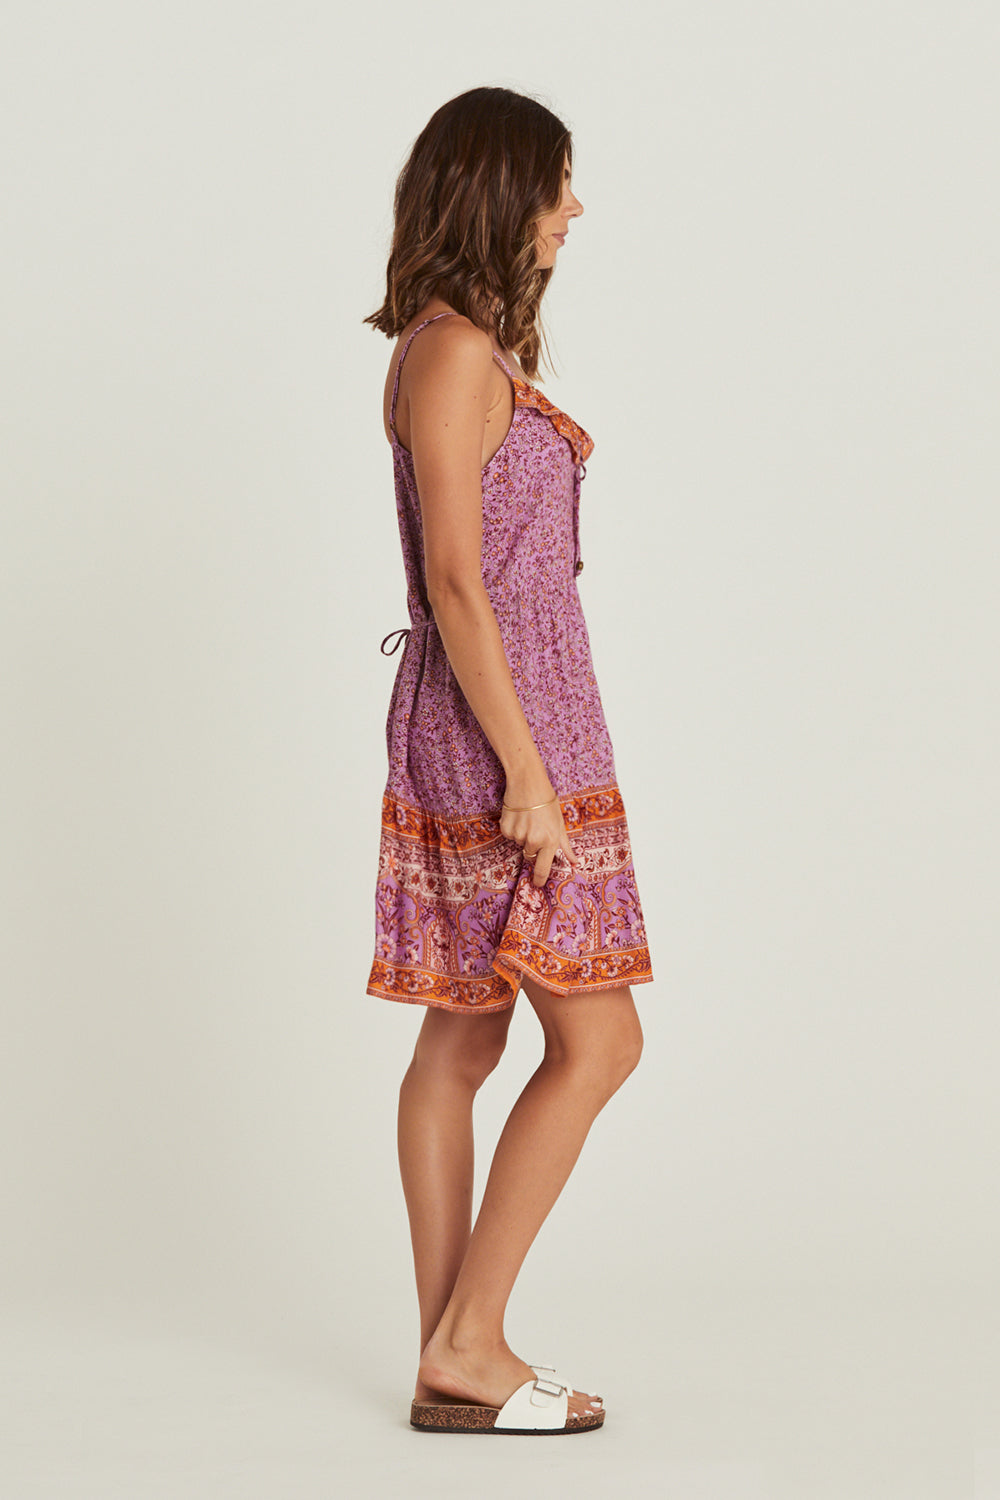 Island Mini Dress in Amethyst